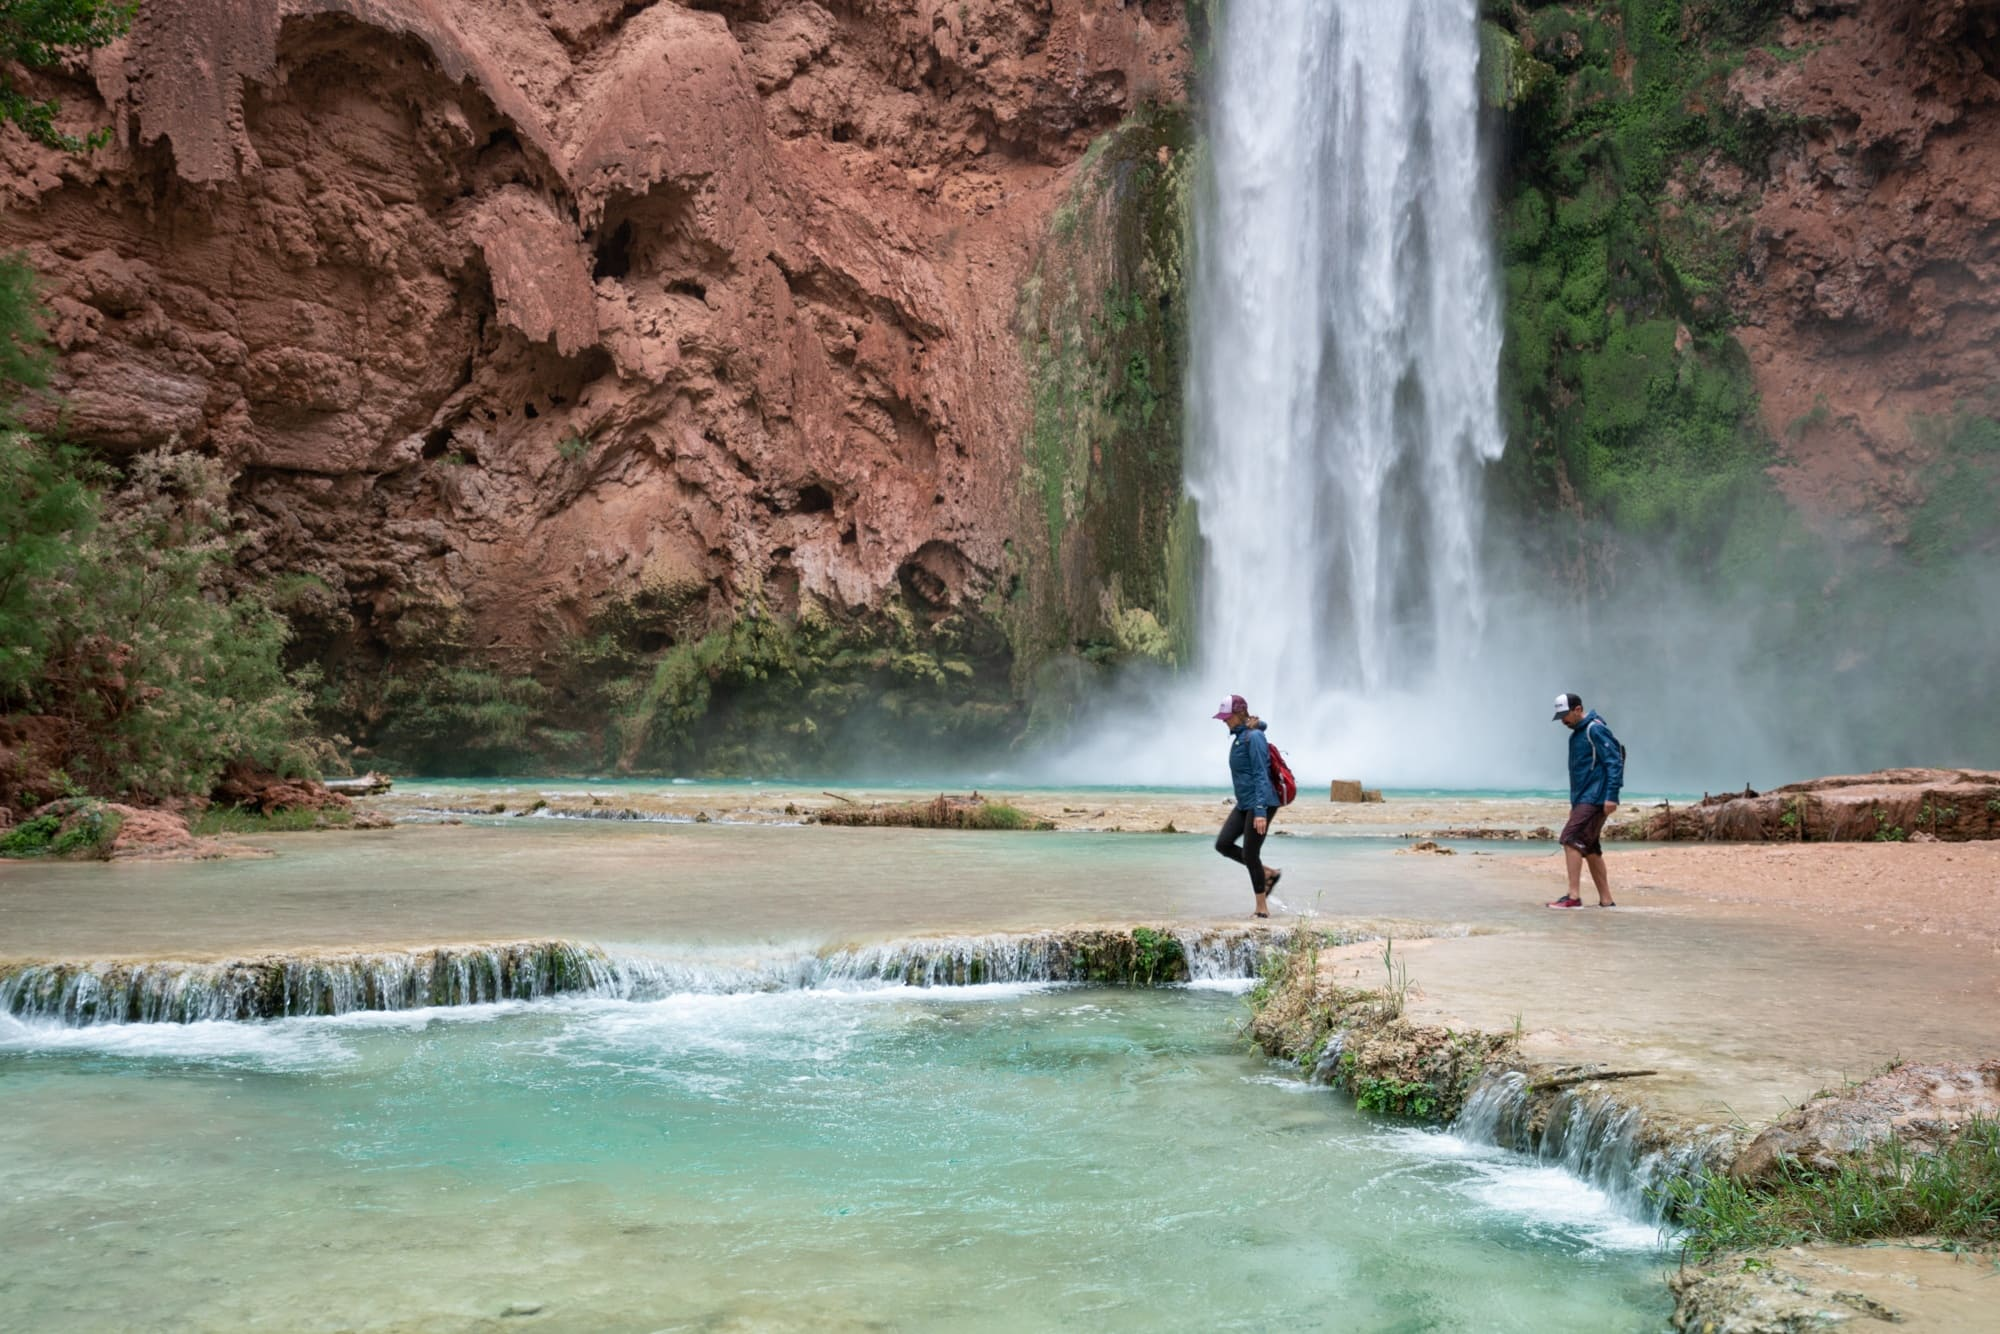 20 Havasu Falls Photos to Inspire your Adventure